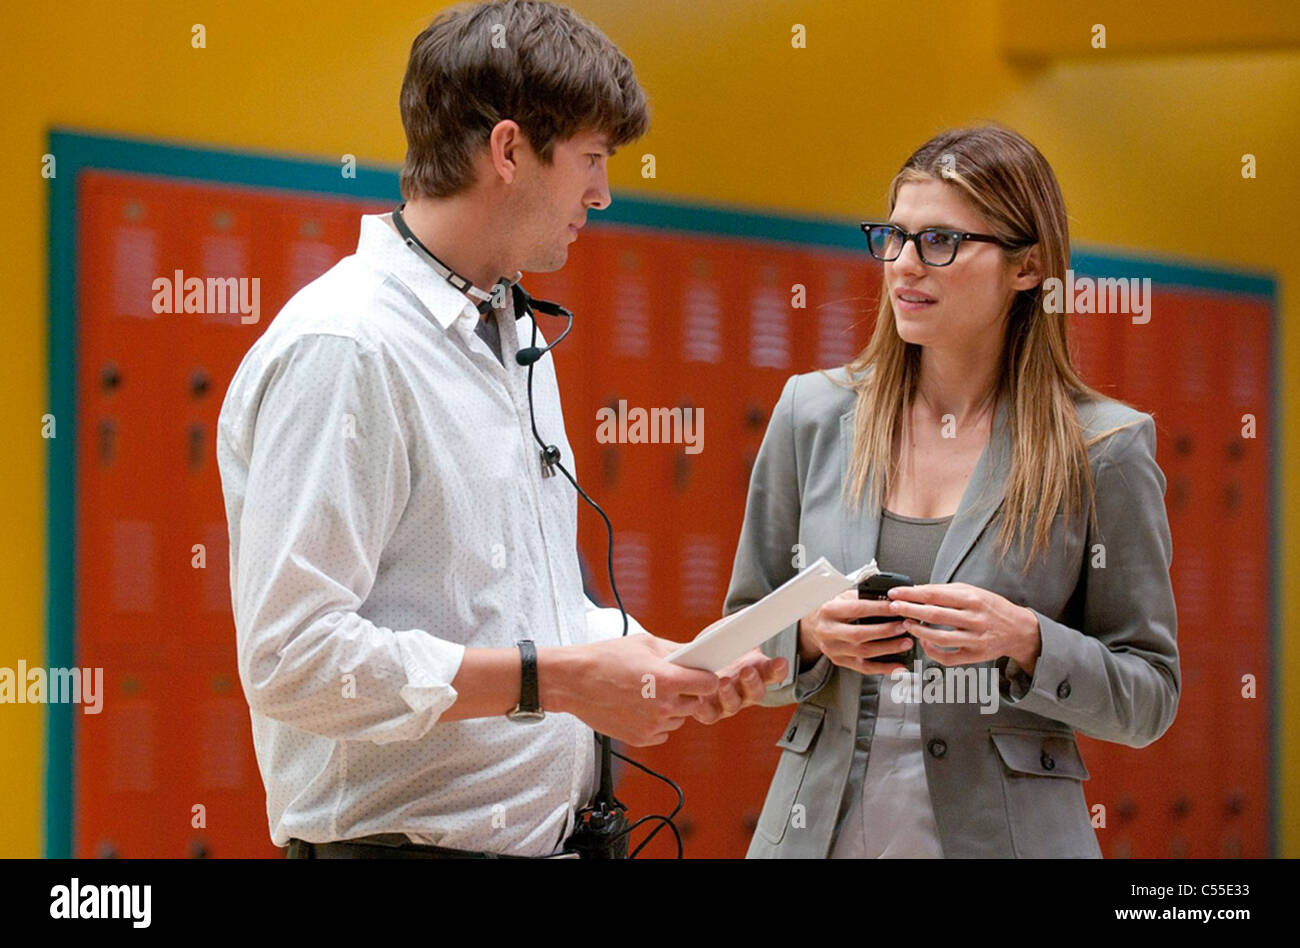 NO STRINGS ATTACHED 2011 Paramount Pictures film with from Ashton Kutcher at left and Lake Bell - Stock Image